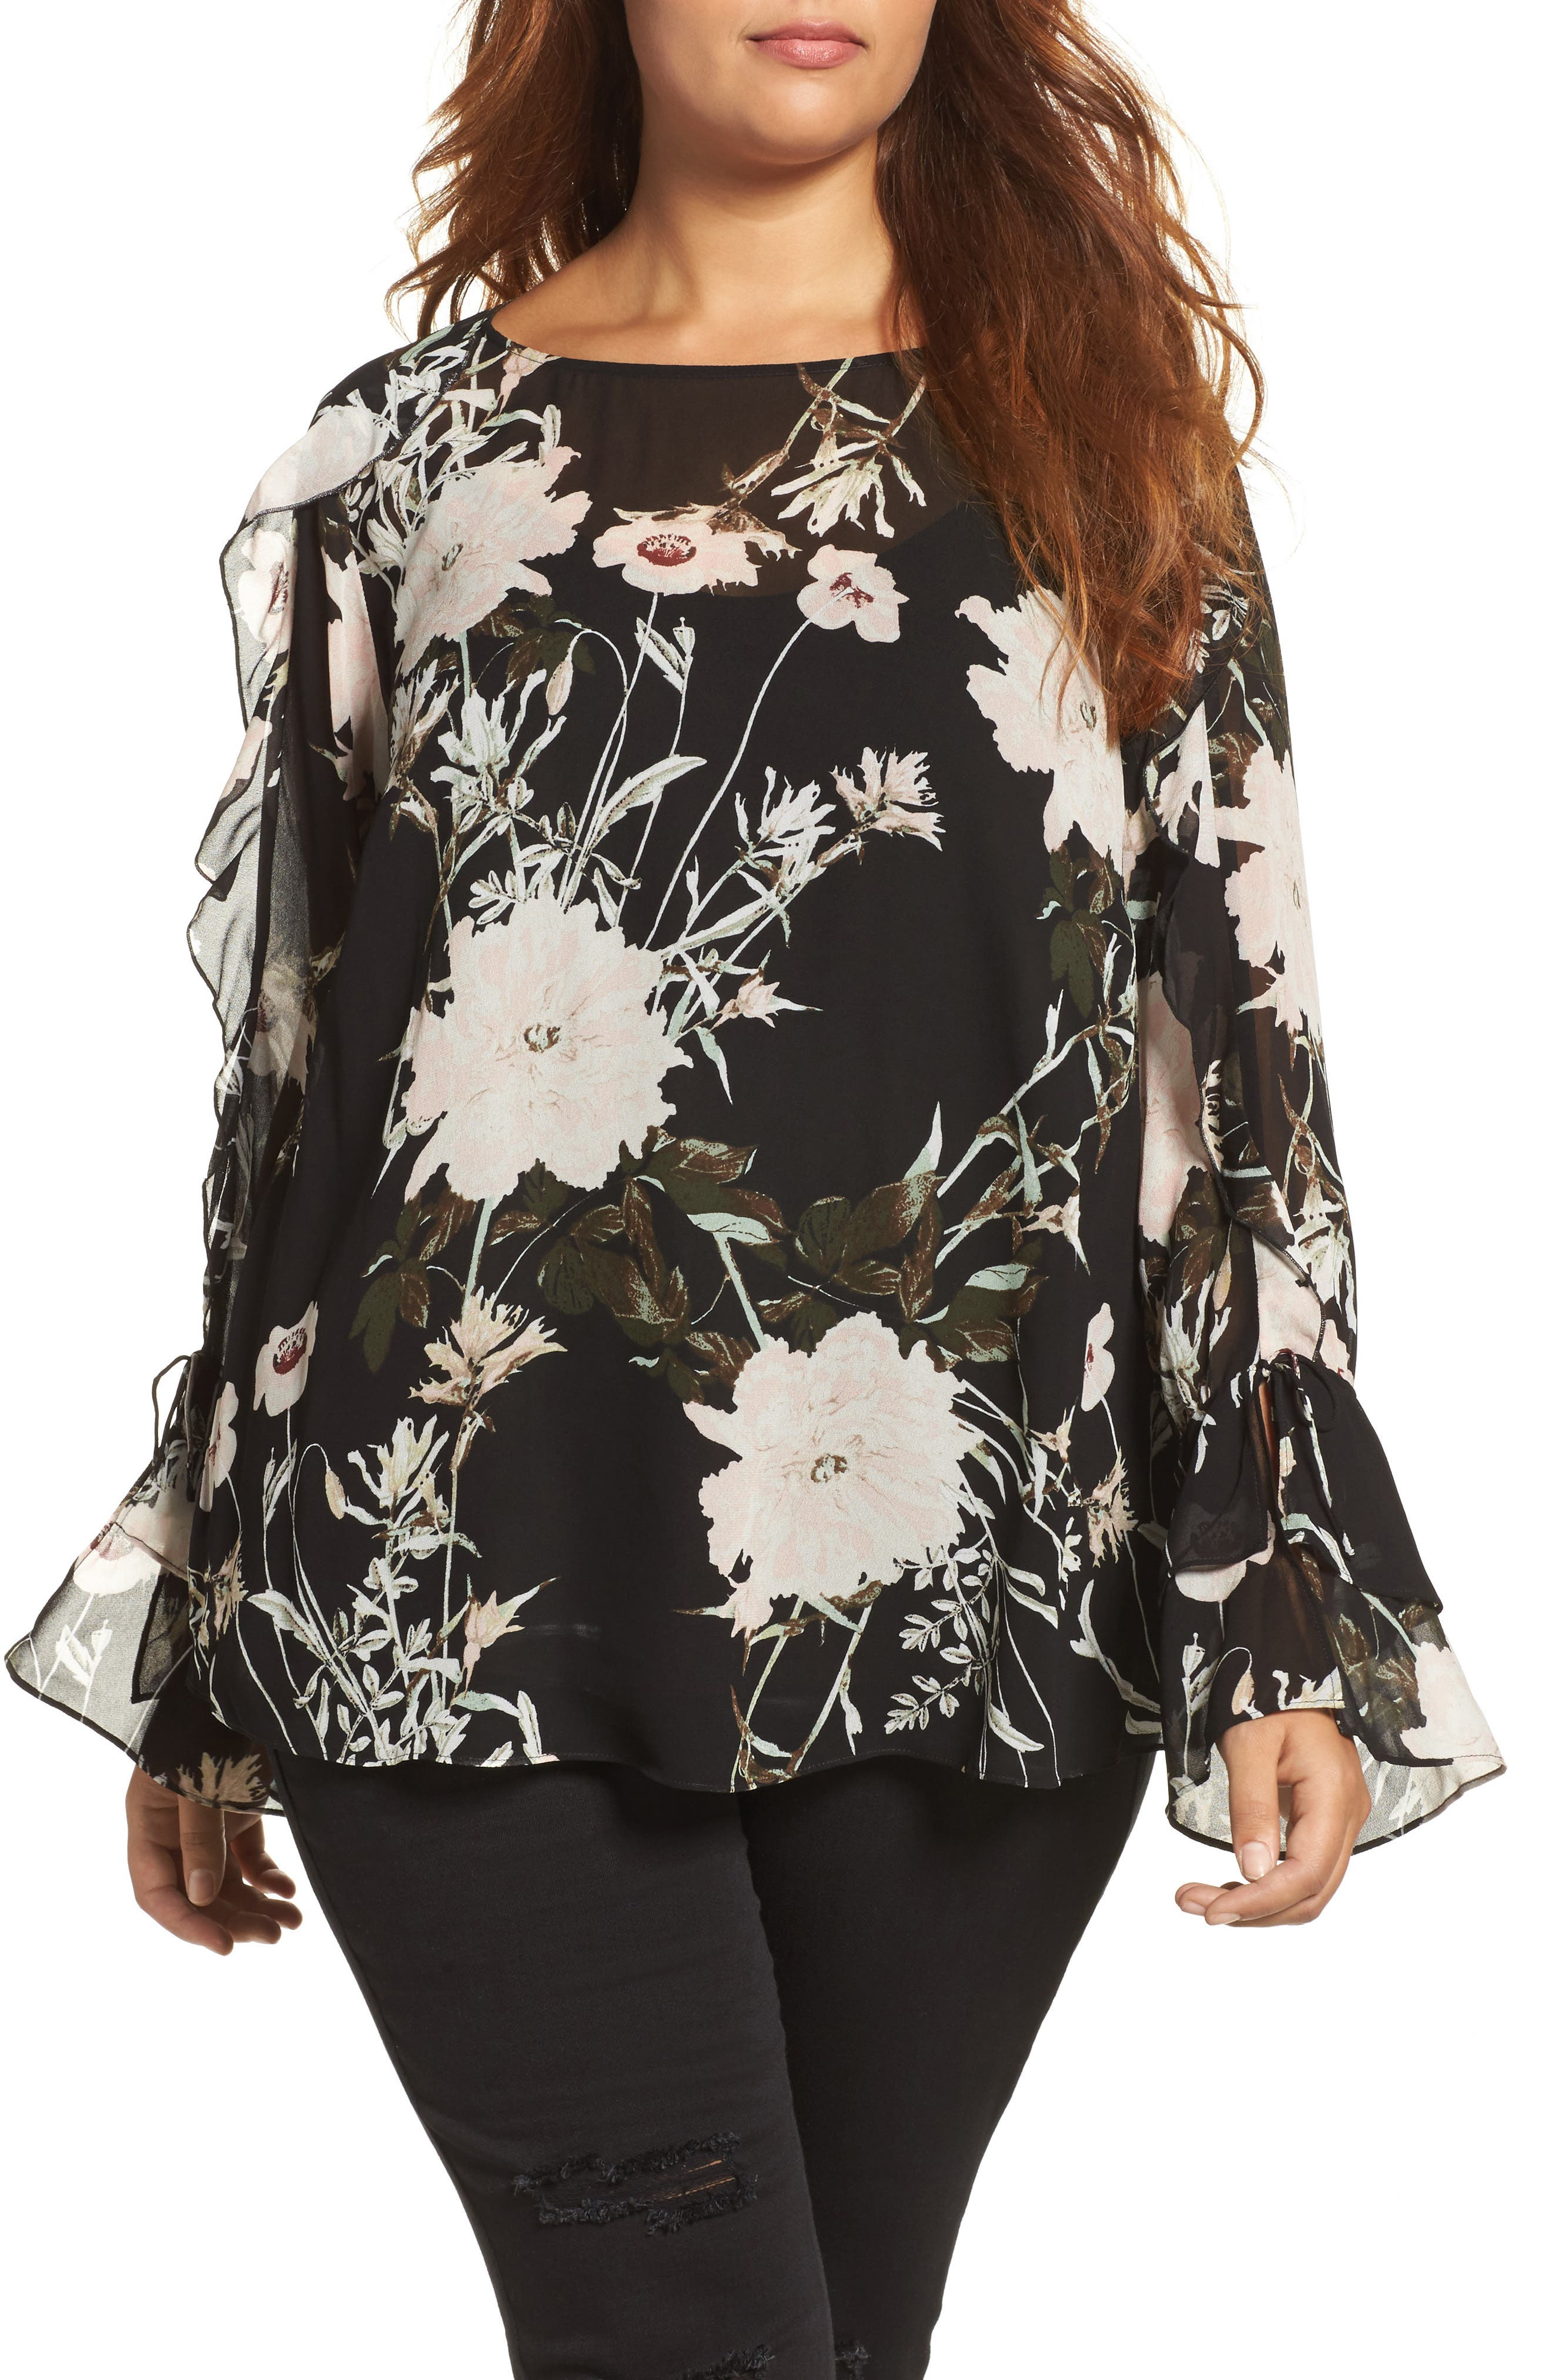 Alternate Image 1 Selected - Lucky Brand Floral Print Bell Sleeve Top (Plus Size)